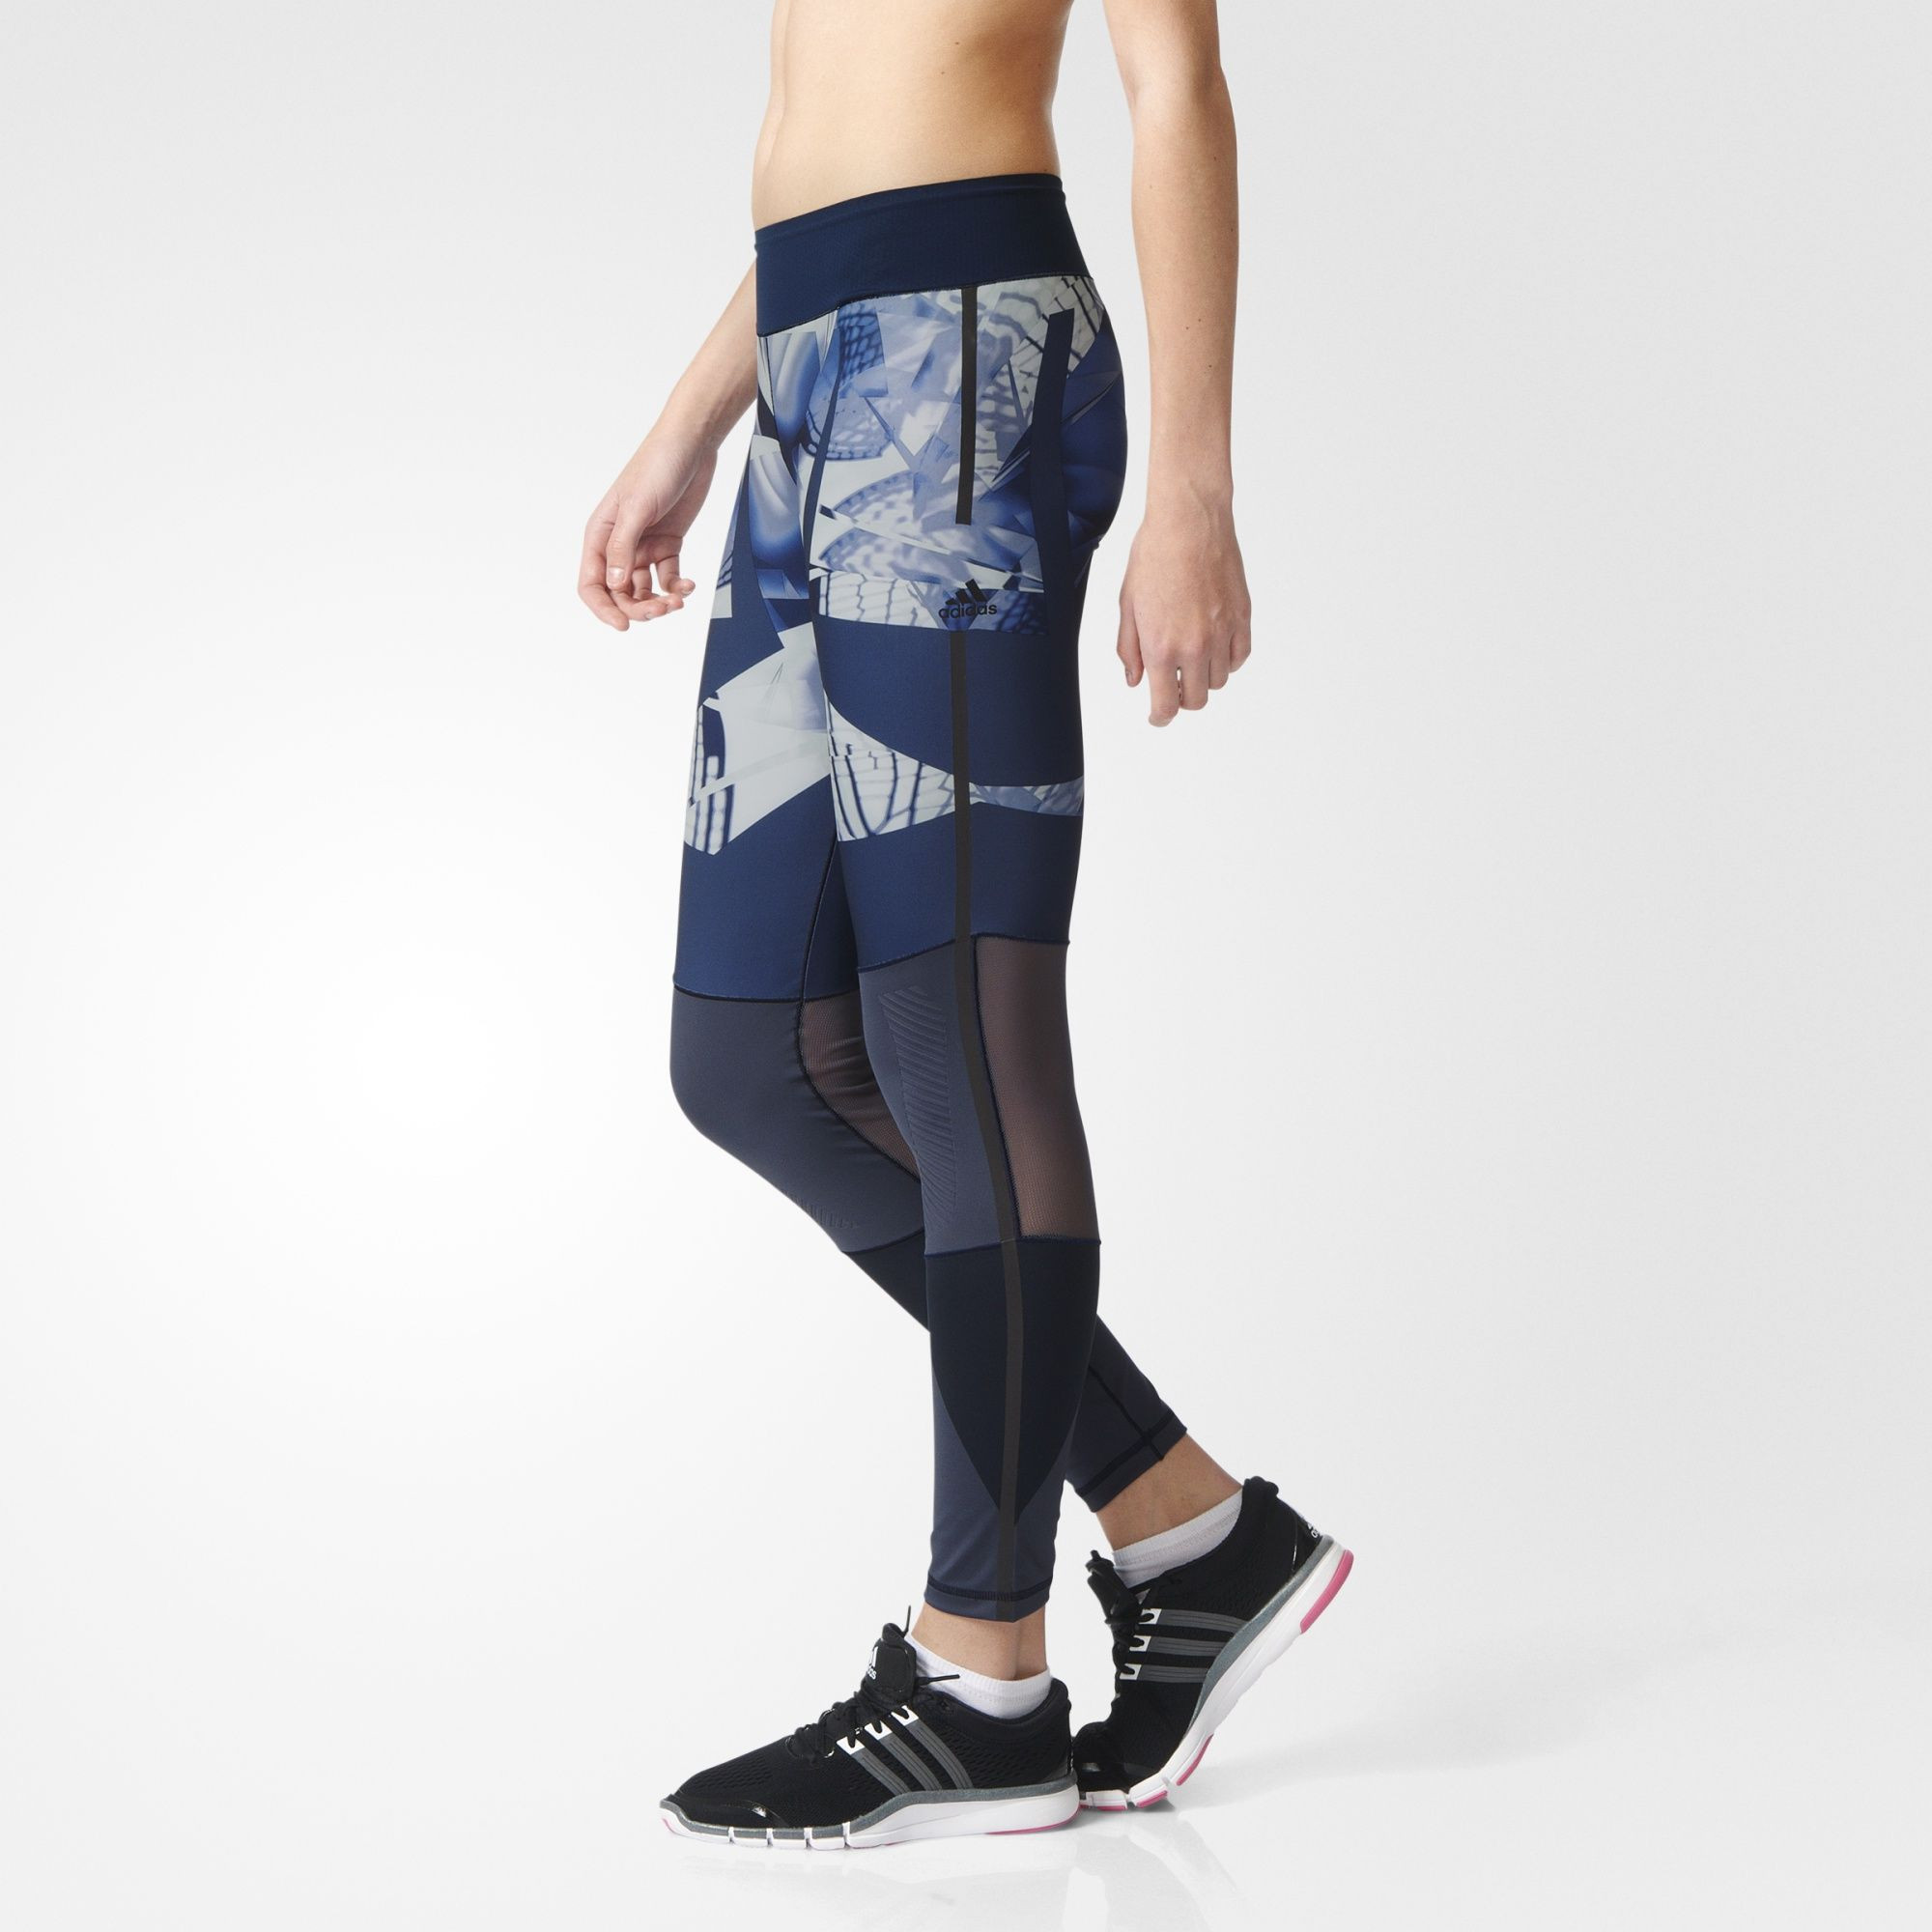 b5a8ace9 Adidas WOW Tights Women's Utility Blue/Collegiate Navy | Supersport.no